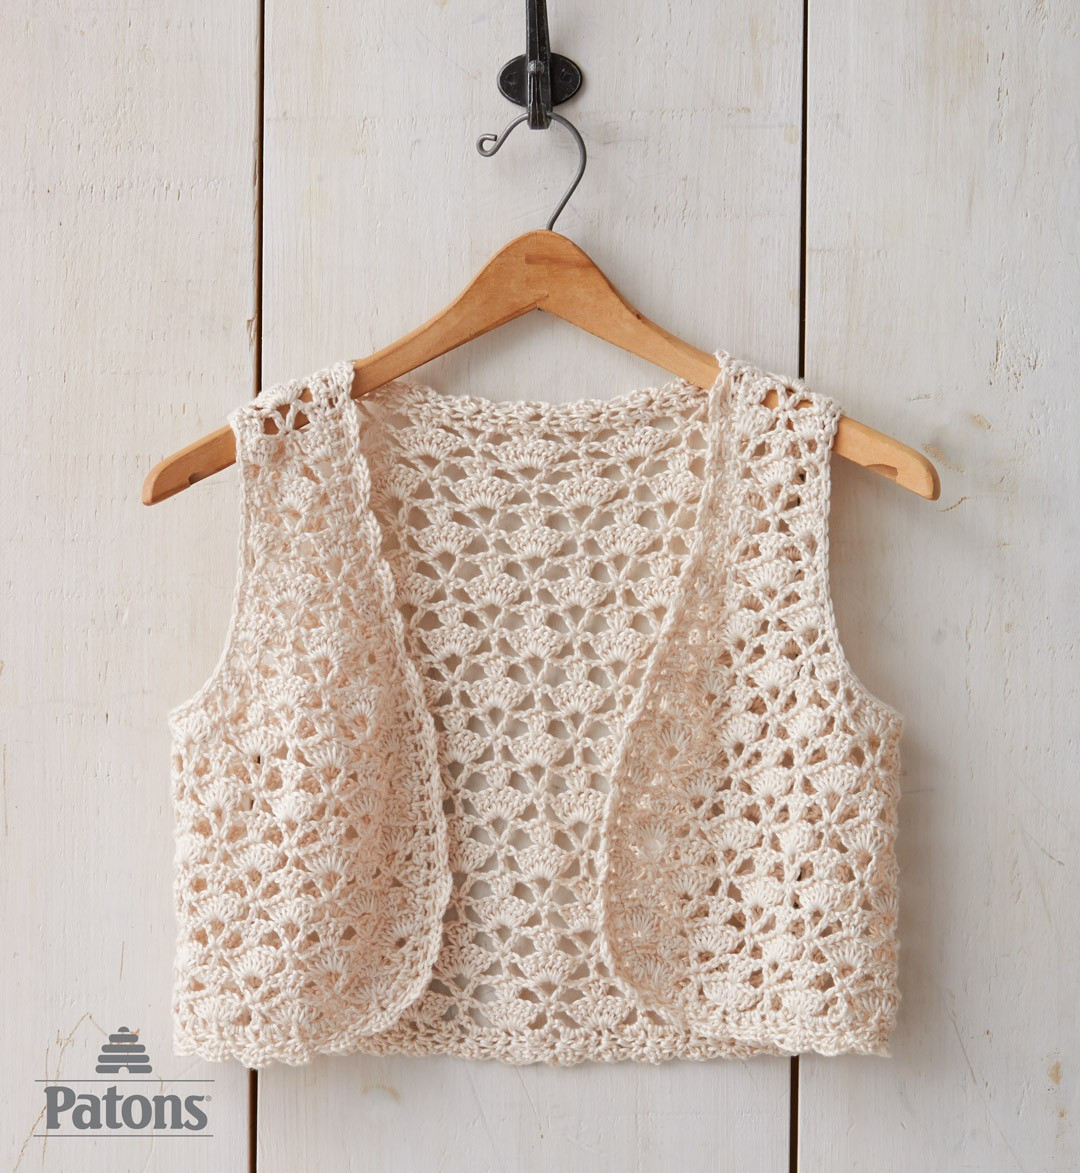 Free Crochet Vest Patterns Fresh Patons Seashell Crochet Vest Crochet Pattern Of Awesome 41 Images Free Crochet Vest Patterns